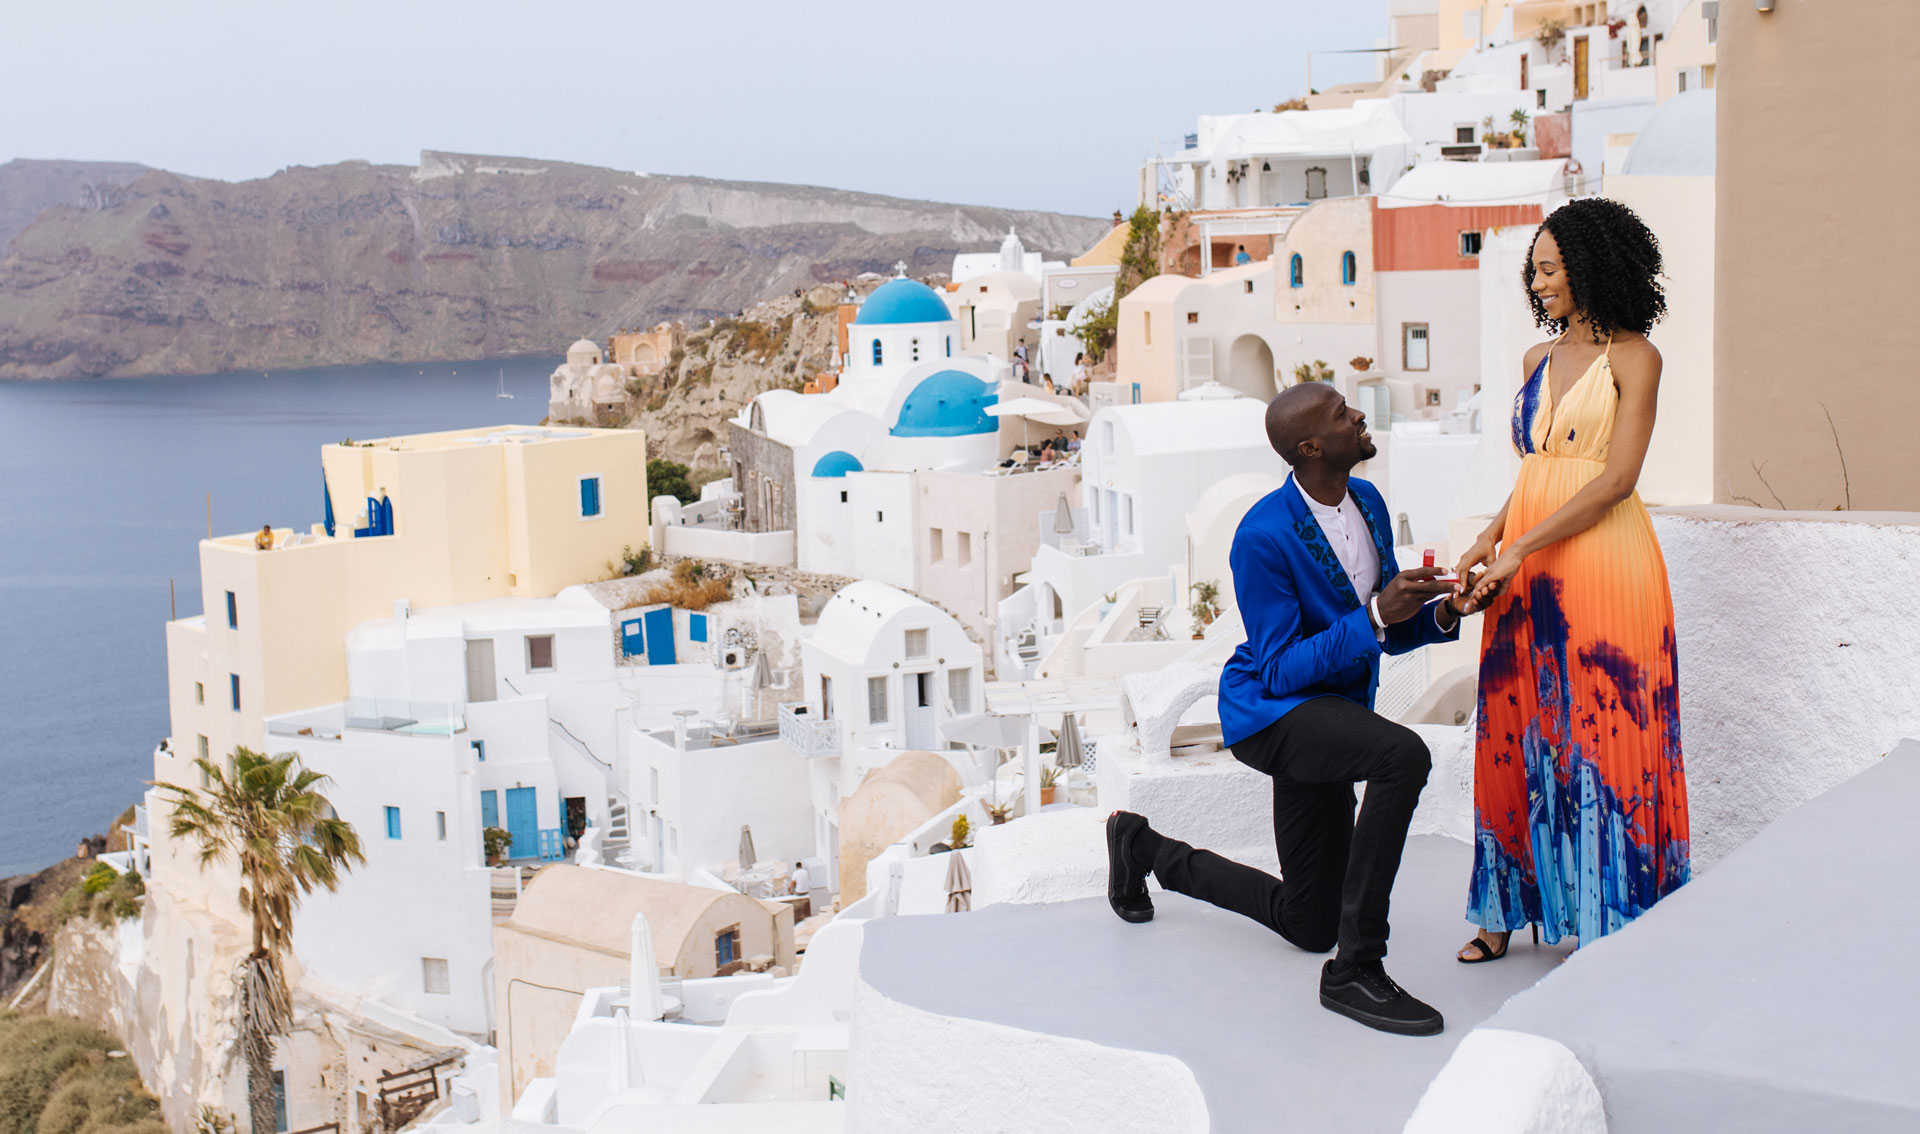 groom proposes to bride in Morocco